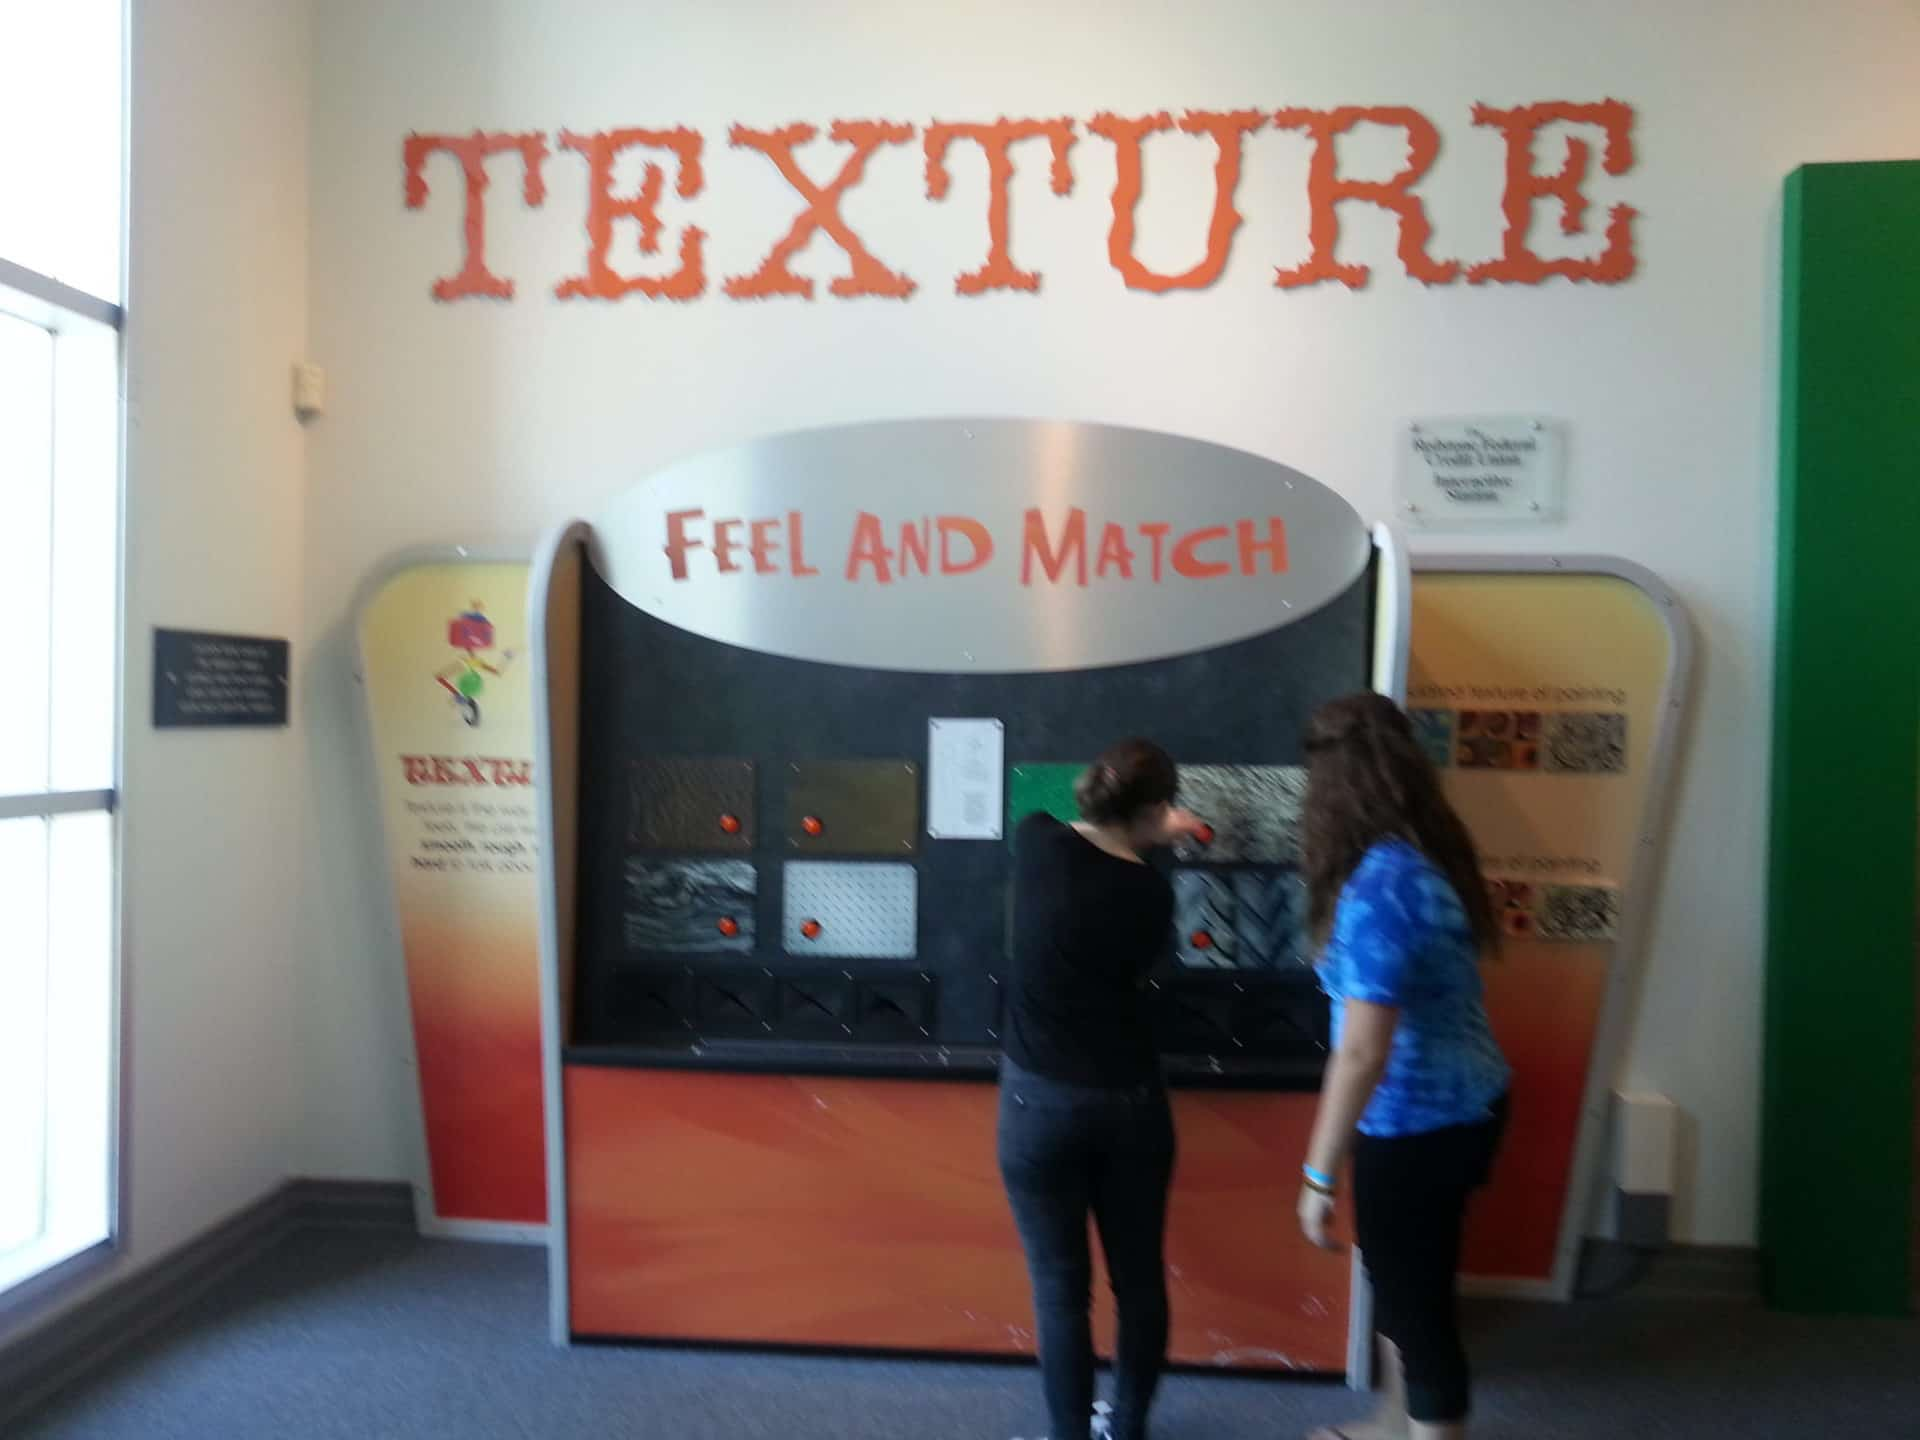 Huntsville Museum of Art - Texture - Feel and Match